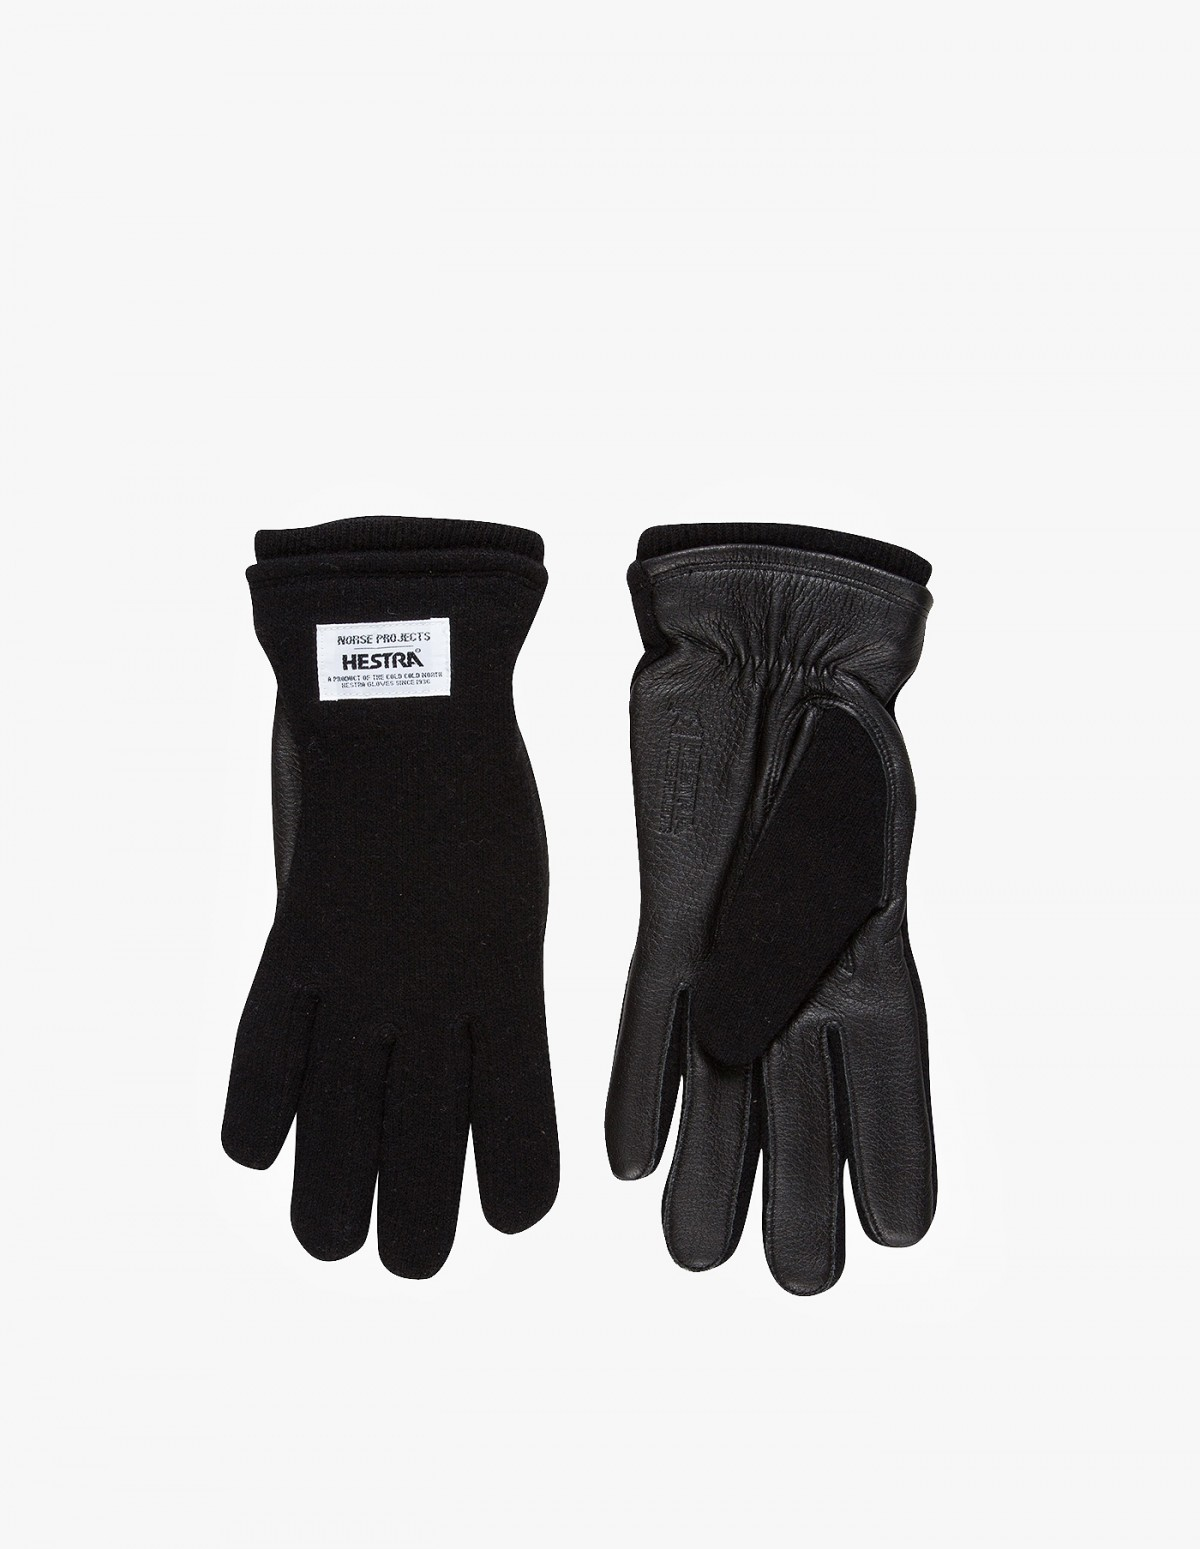 Norse Projects Hestra Svante Gloves in Black